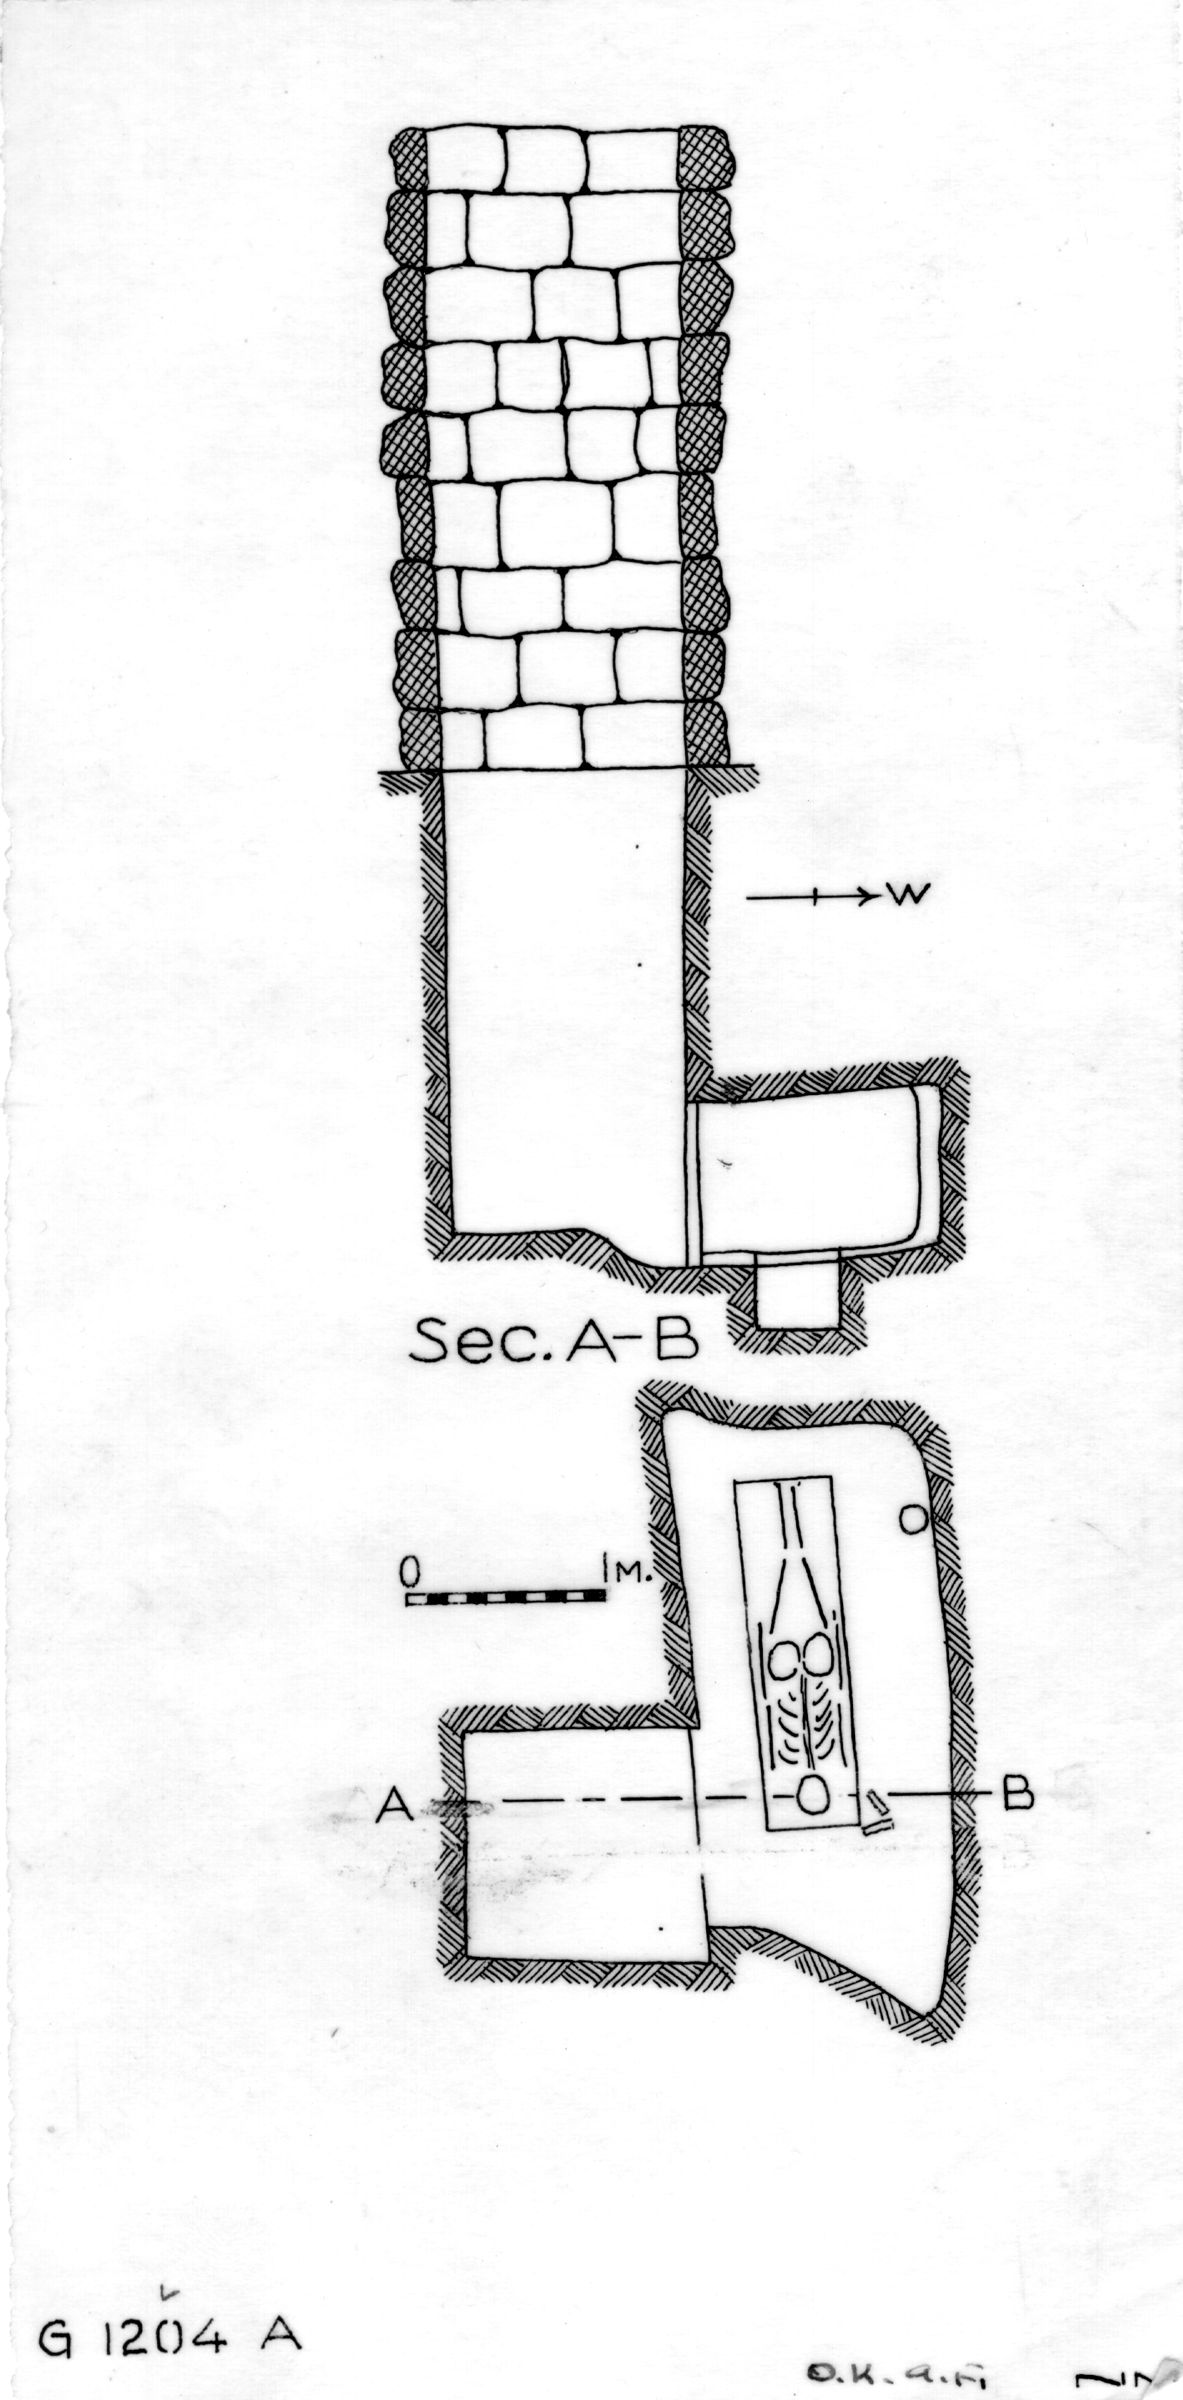 Maps and plans: G 1204, Shaft A